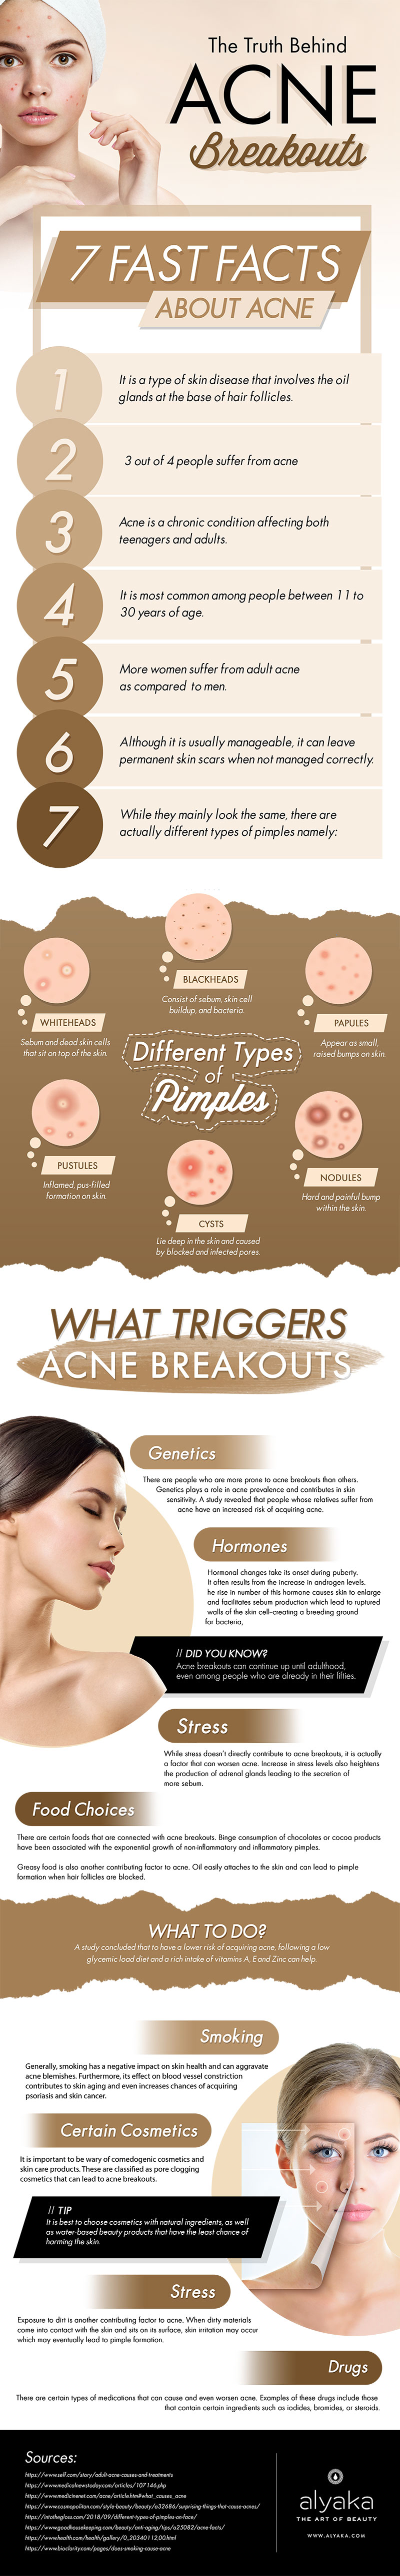 The Facts to Know About Acne-Breakouts